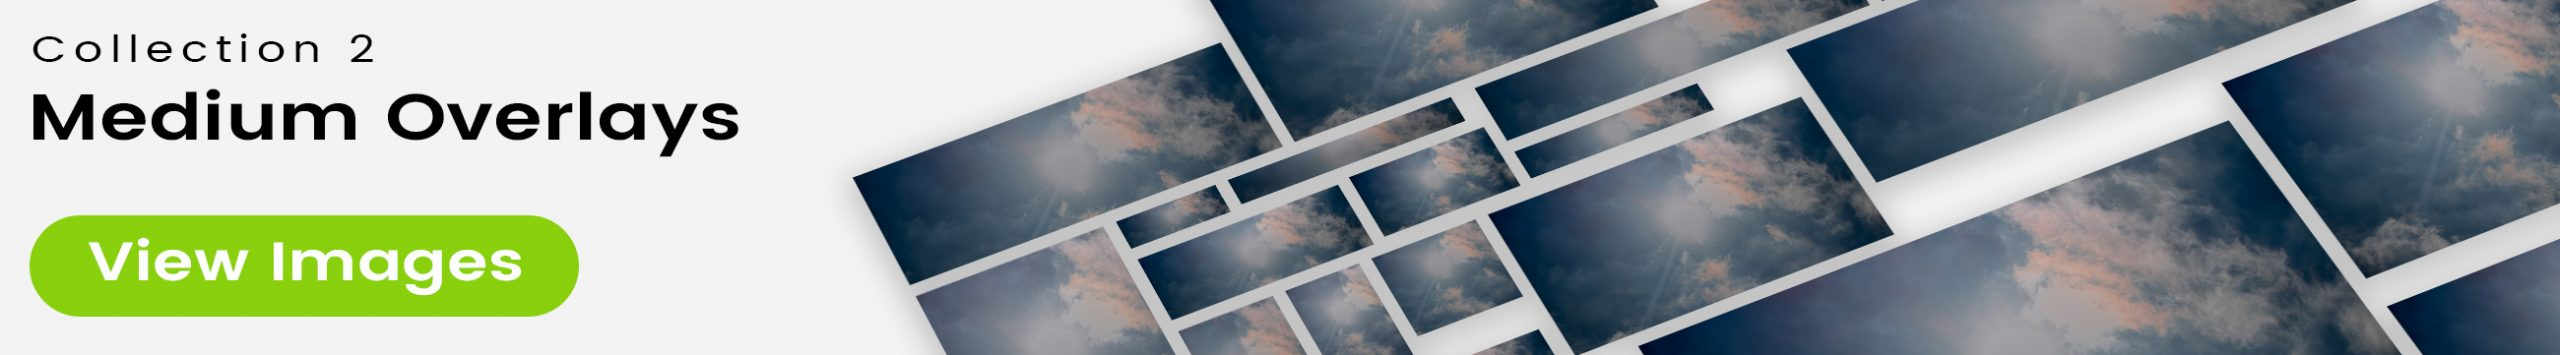 See 25 of 100 free bonus images included with clouds stock image 9461. Collection 2 features a medium-dark overlay design.